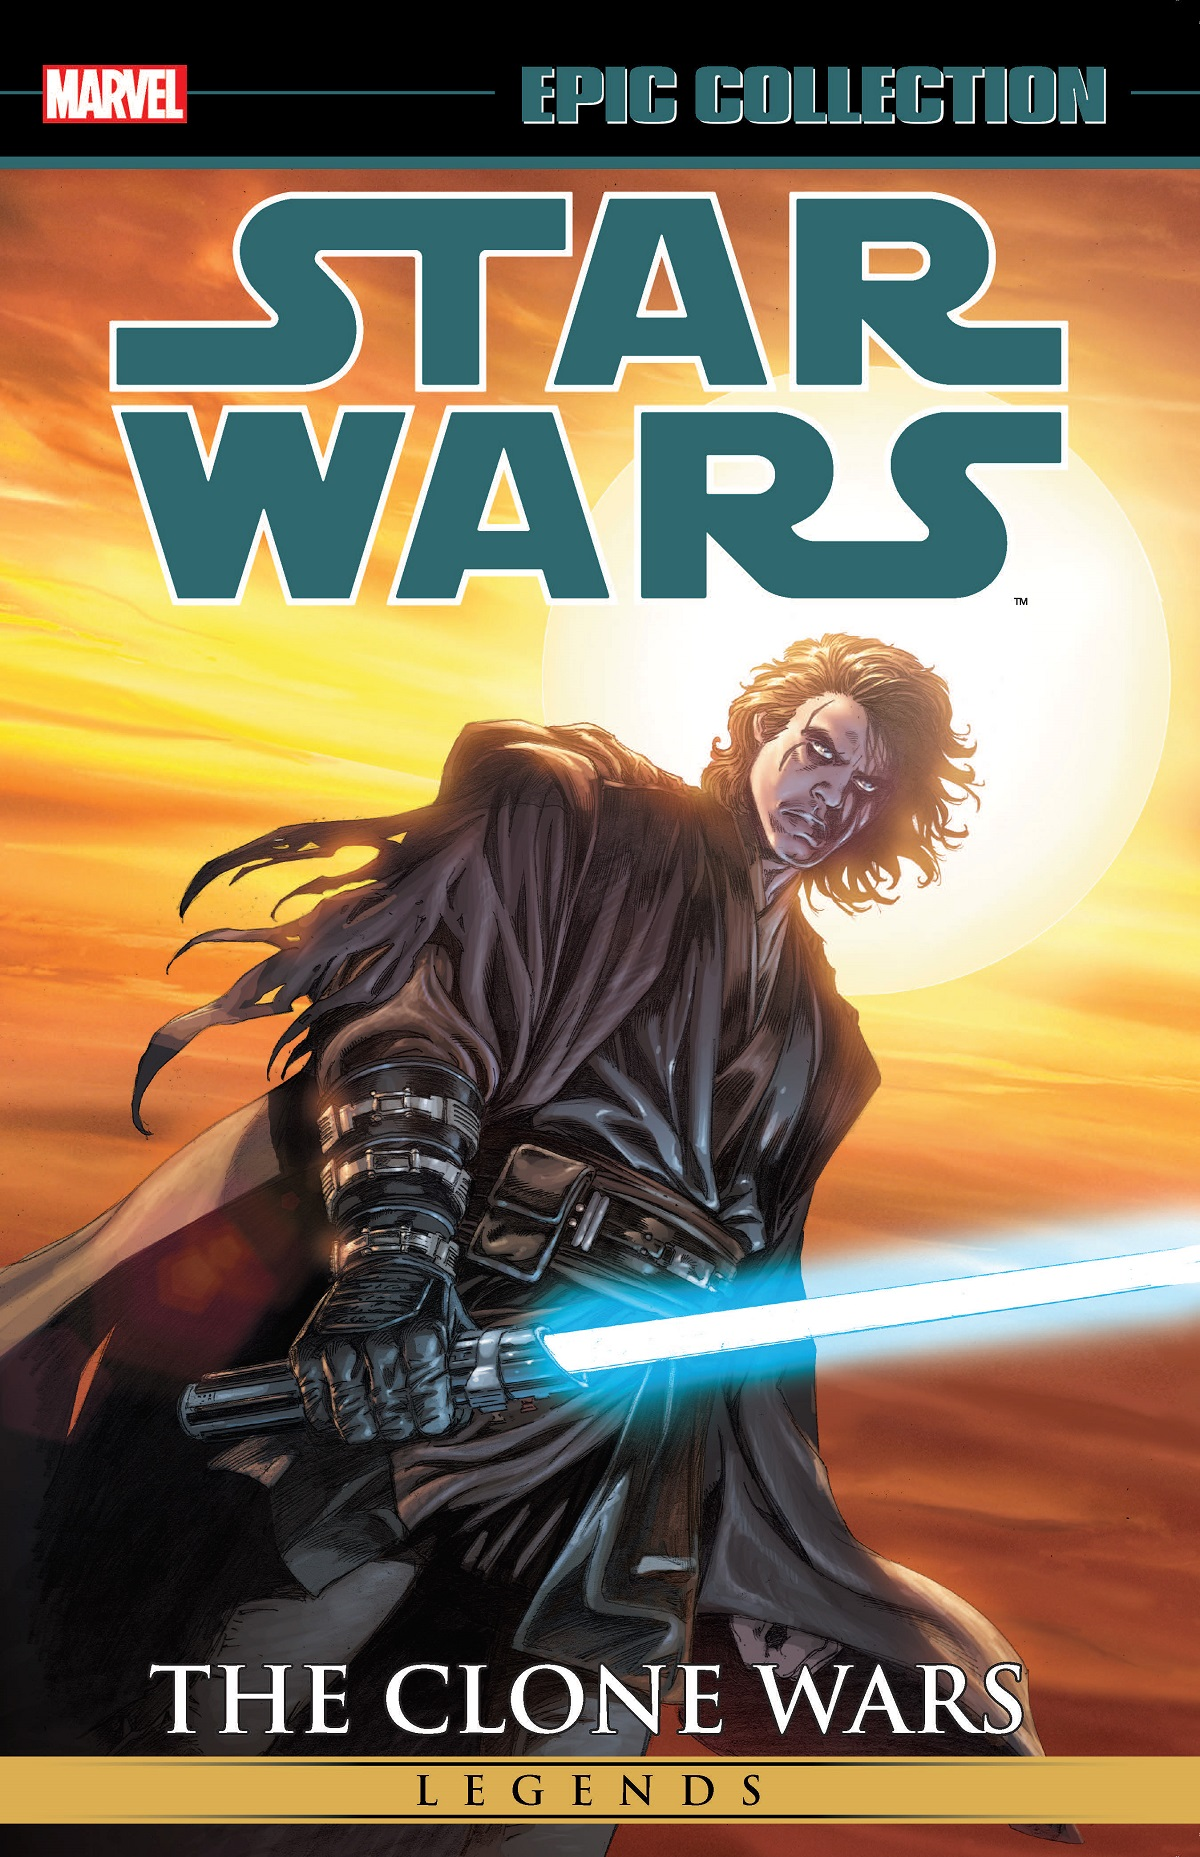 Star Wars Legends Epic Collection: The Clone Wars Vol. 3 (Trade Paperback)